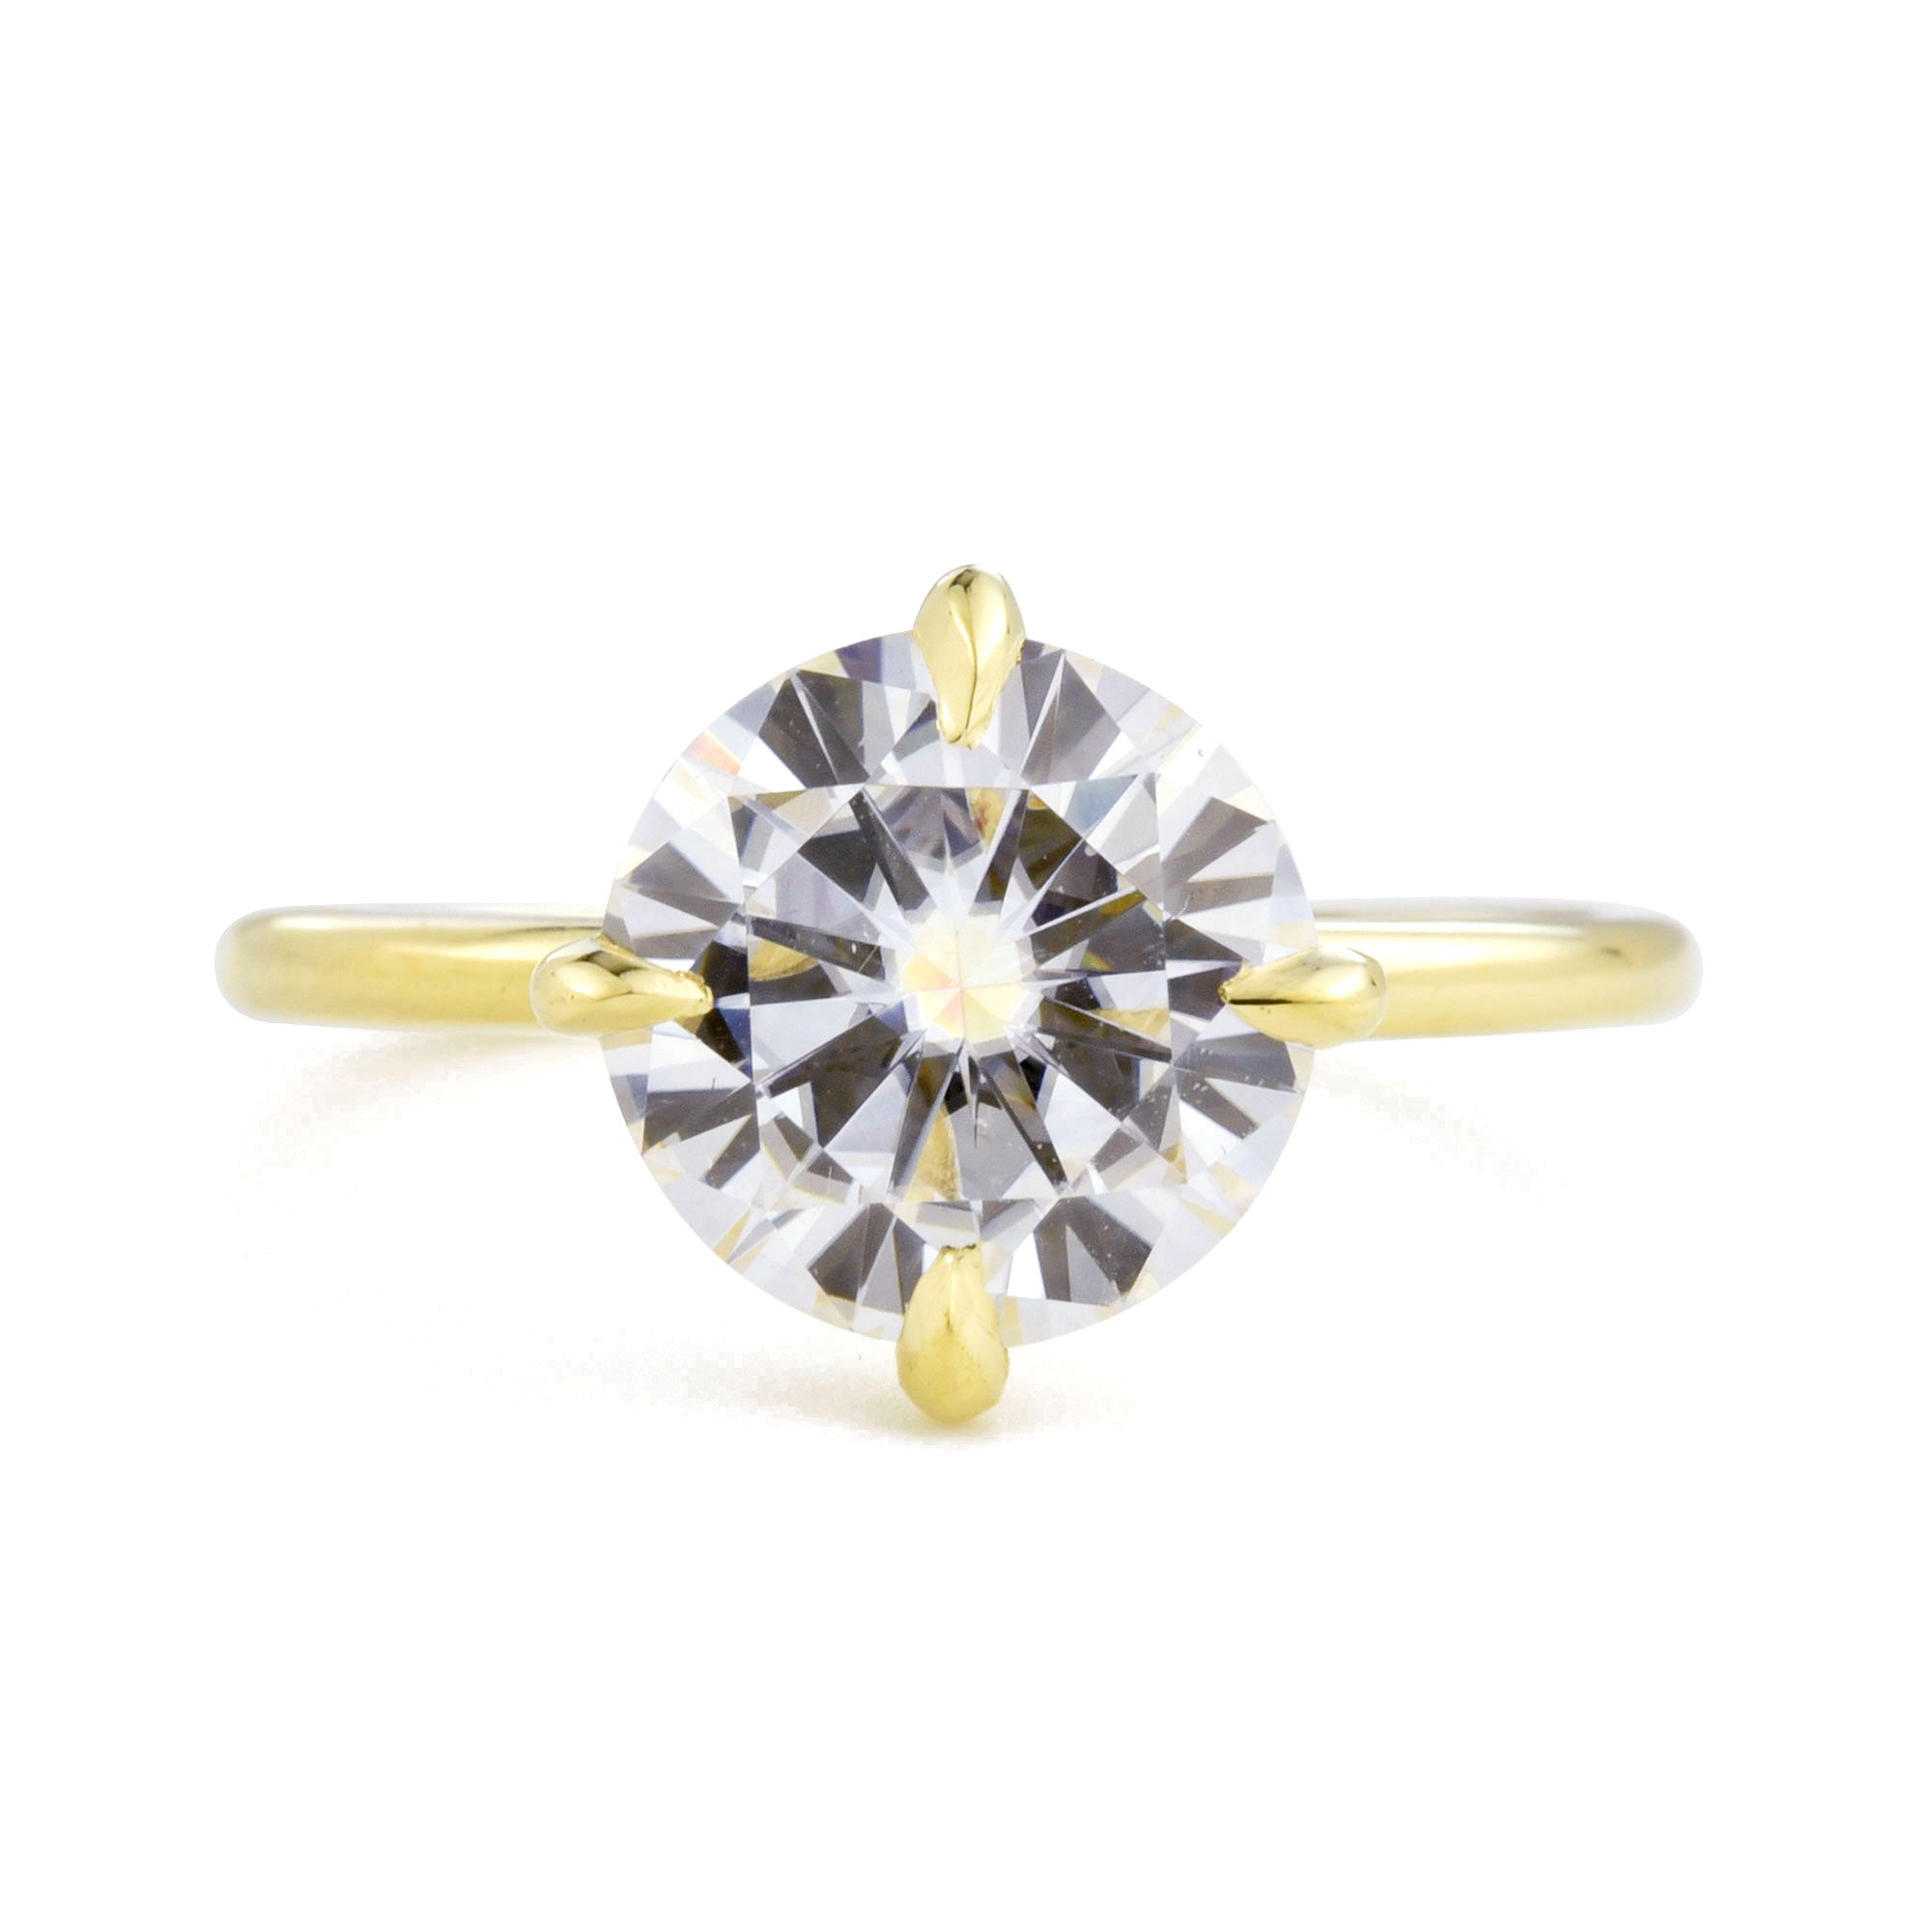 Vera 2ct Diamond Solitaire Engagement Ring in yellow gold